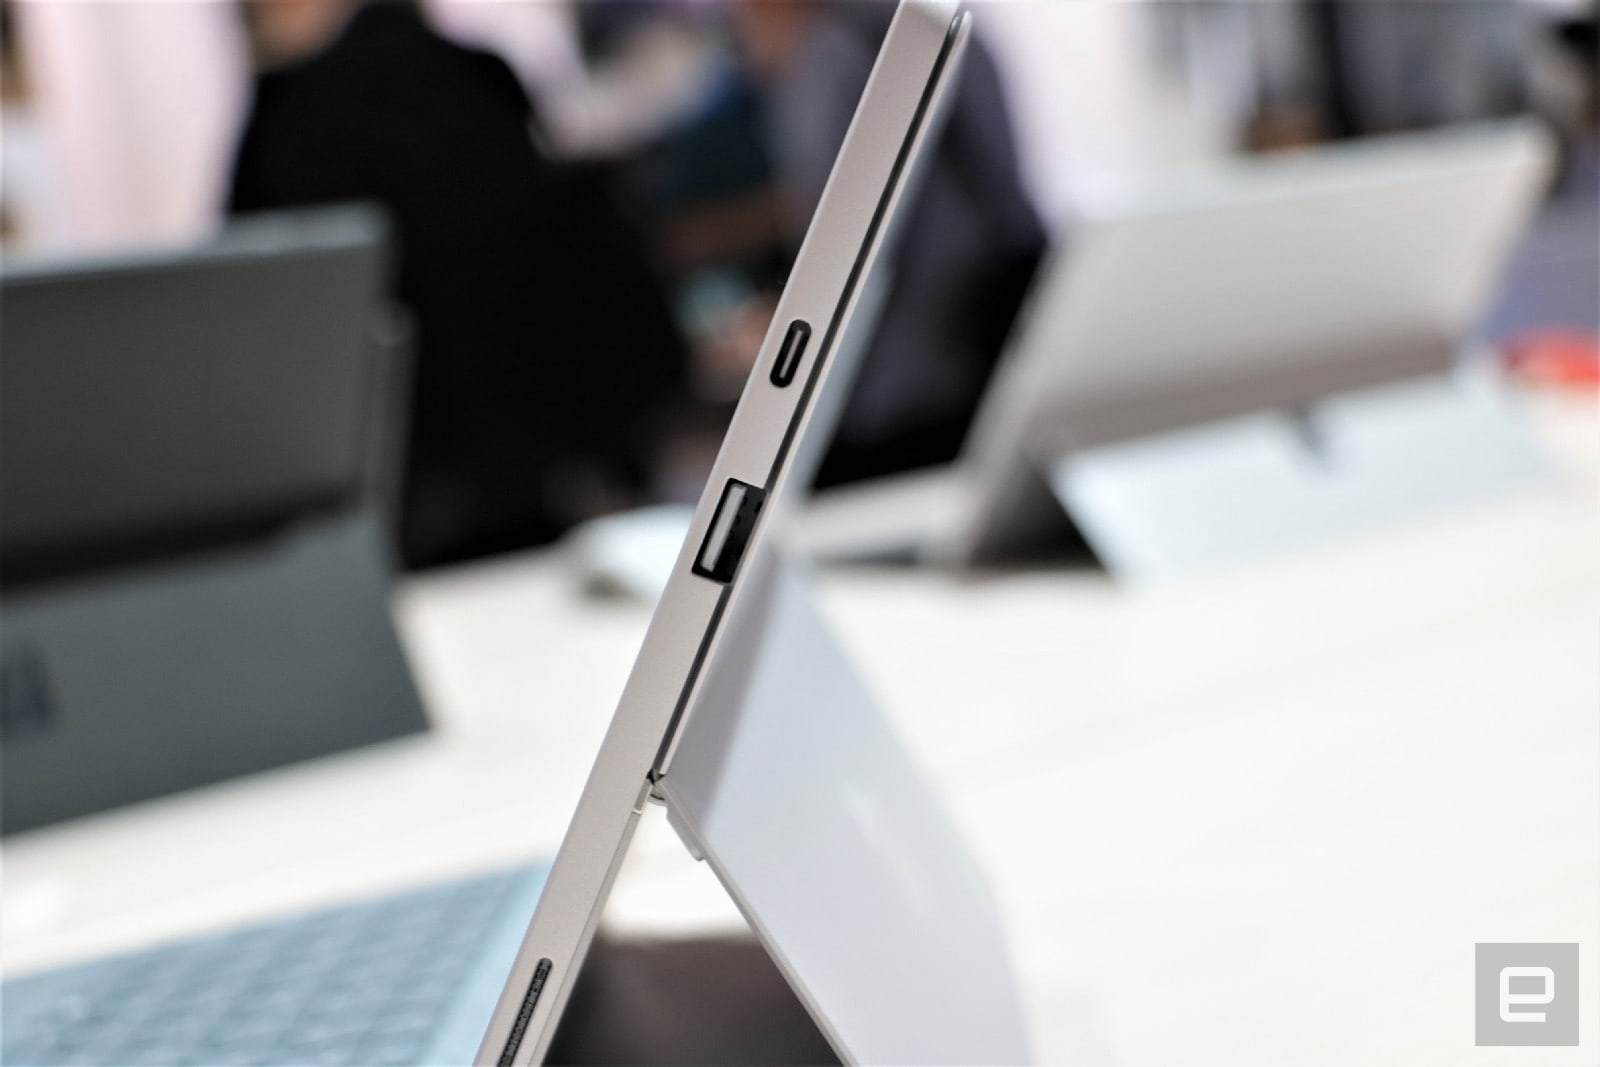 Surface Pro 7 hands-on